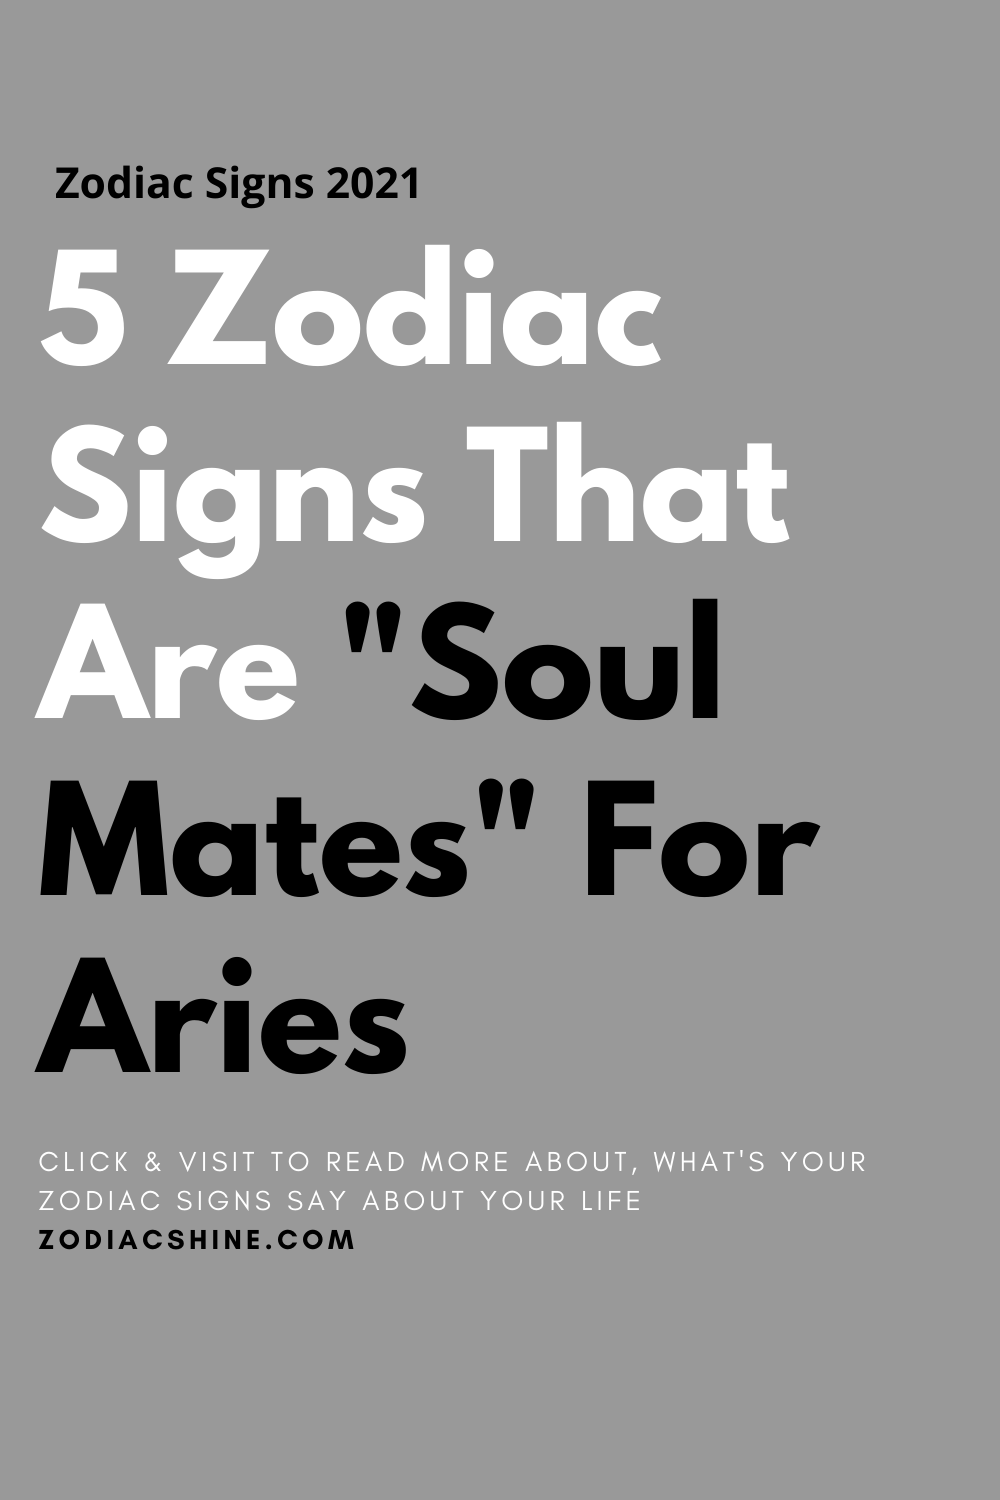 5 Zodiac Signs That Are Soul Mates For Aries